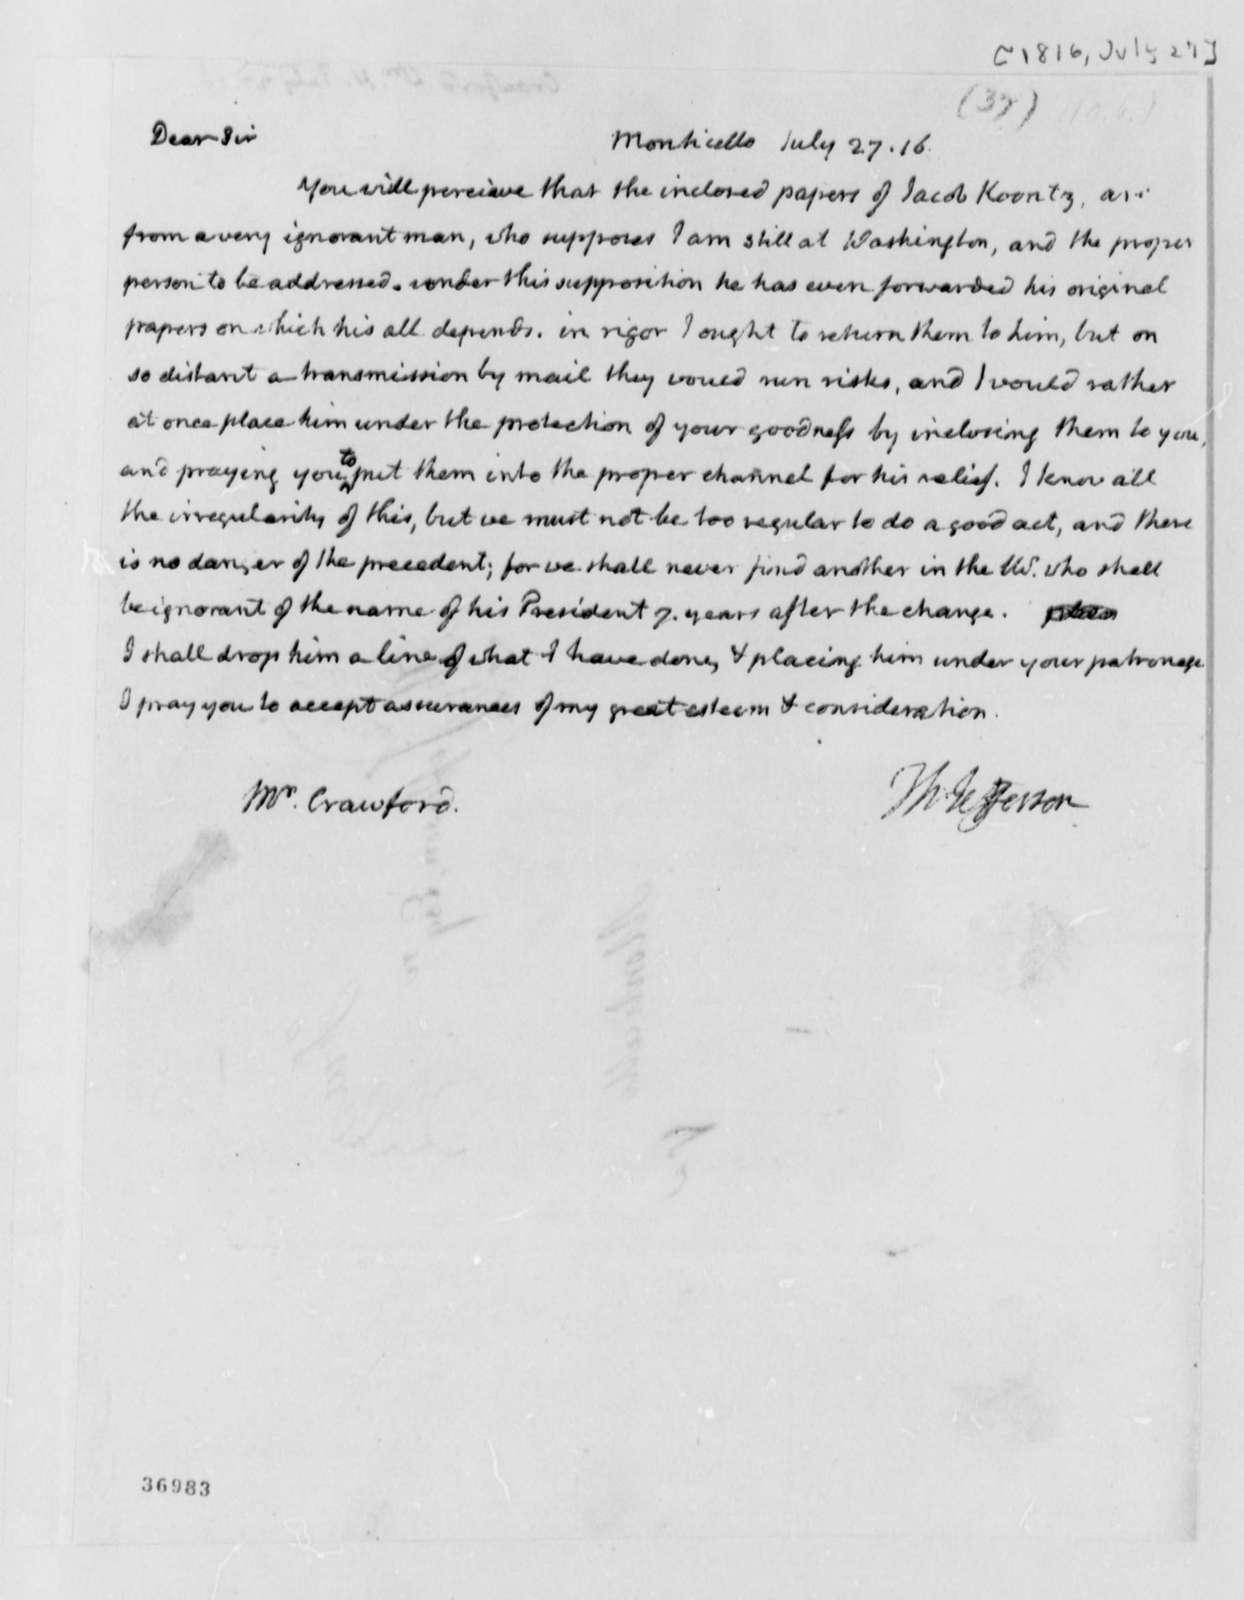 Thomas Jefferson to William H. Crawford, July 27, 1816